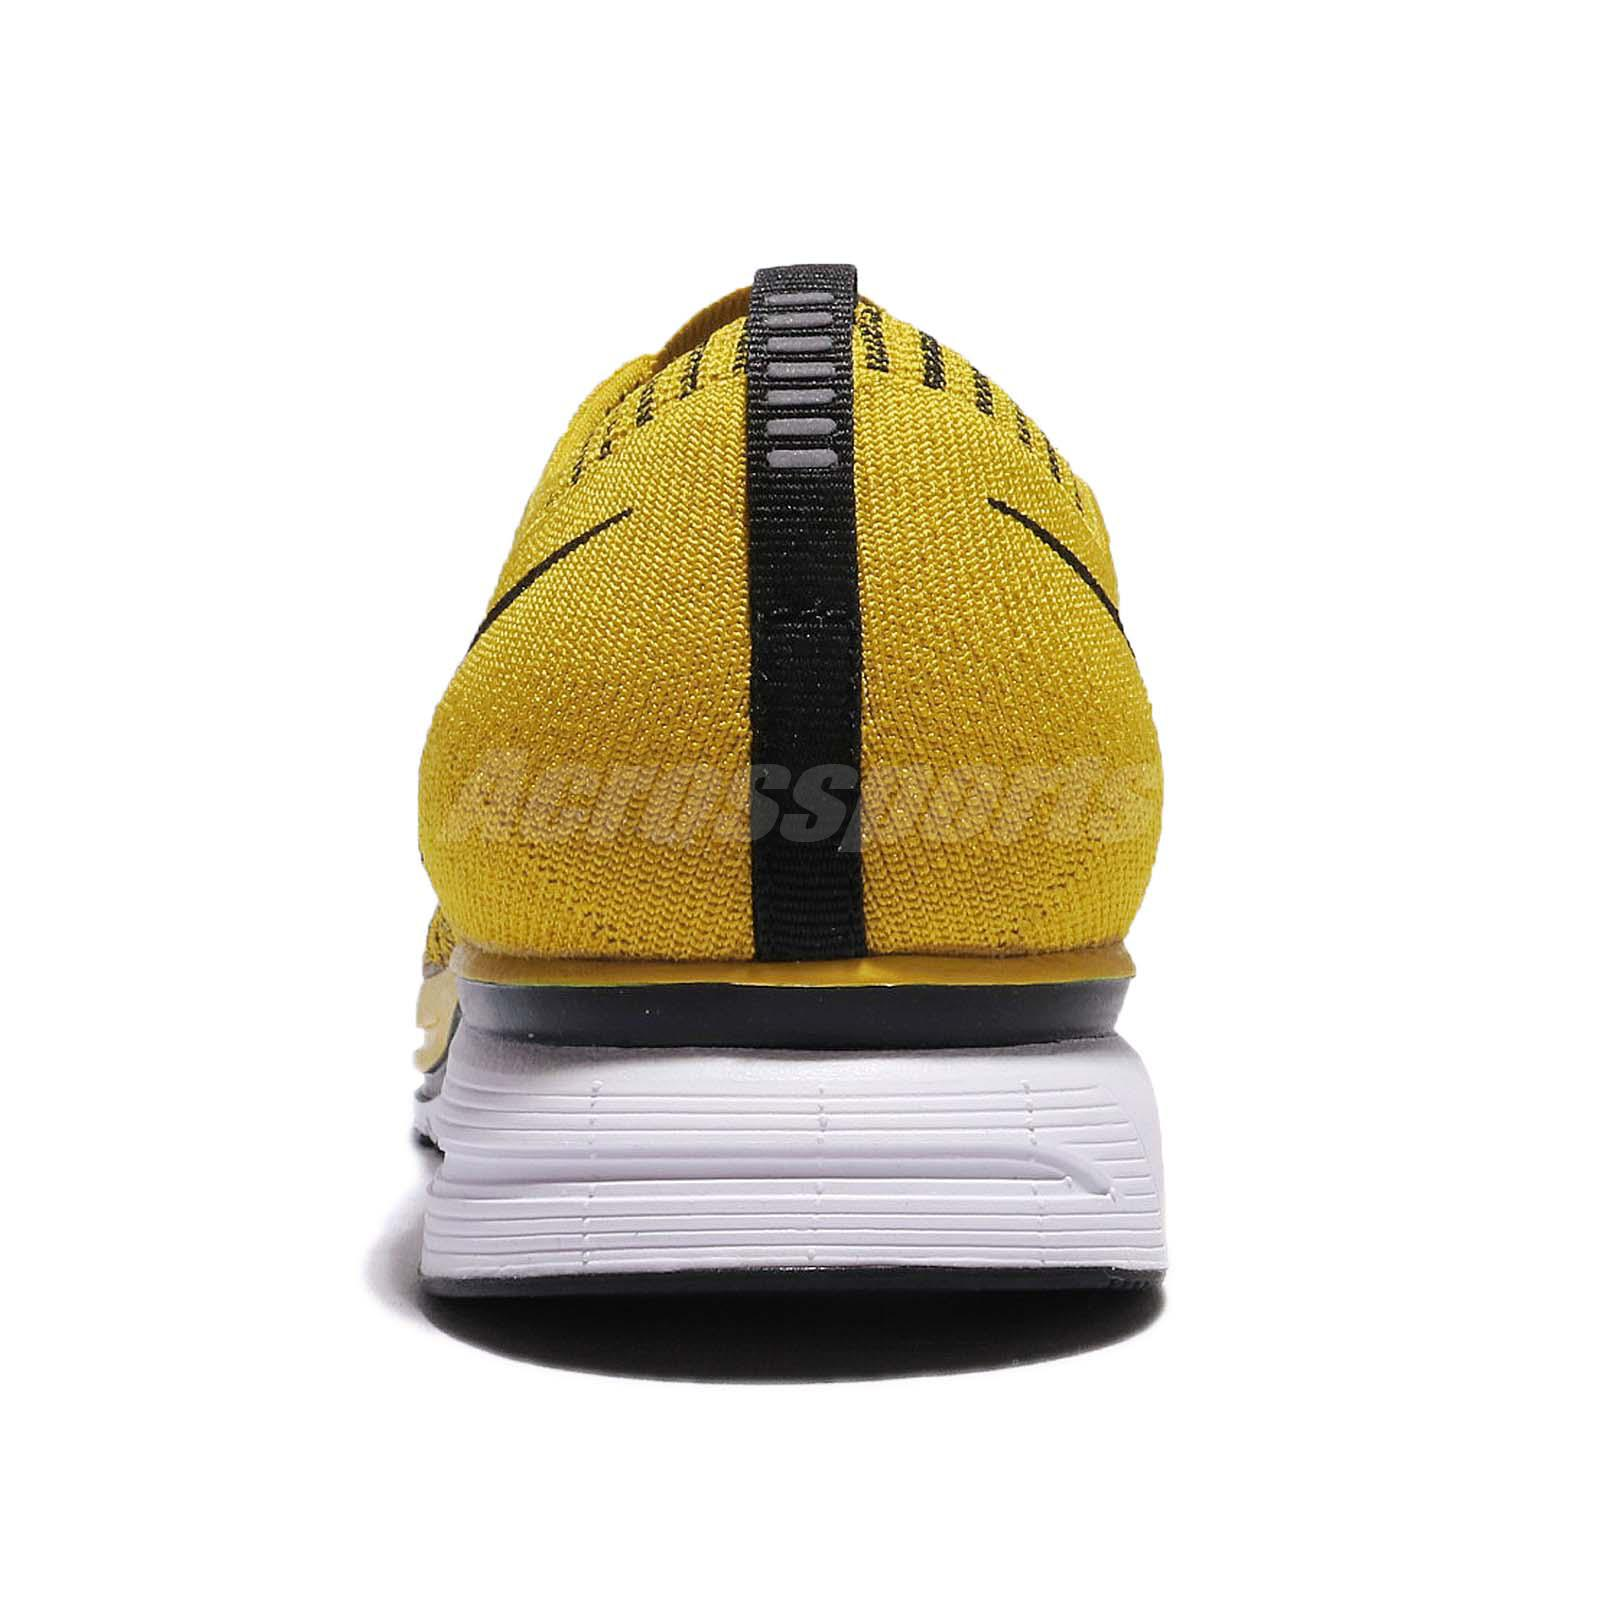 71b2248d42dd0 Nike Flyknit Trainer Bright Citron Black Men Running Shoes Sneakers ...